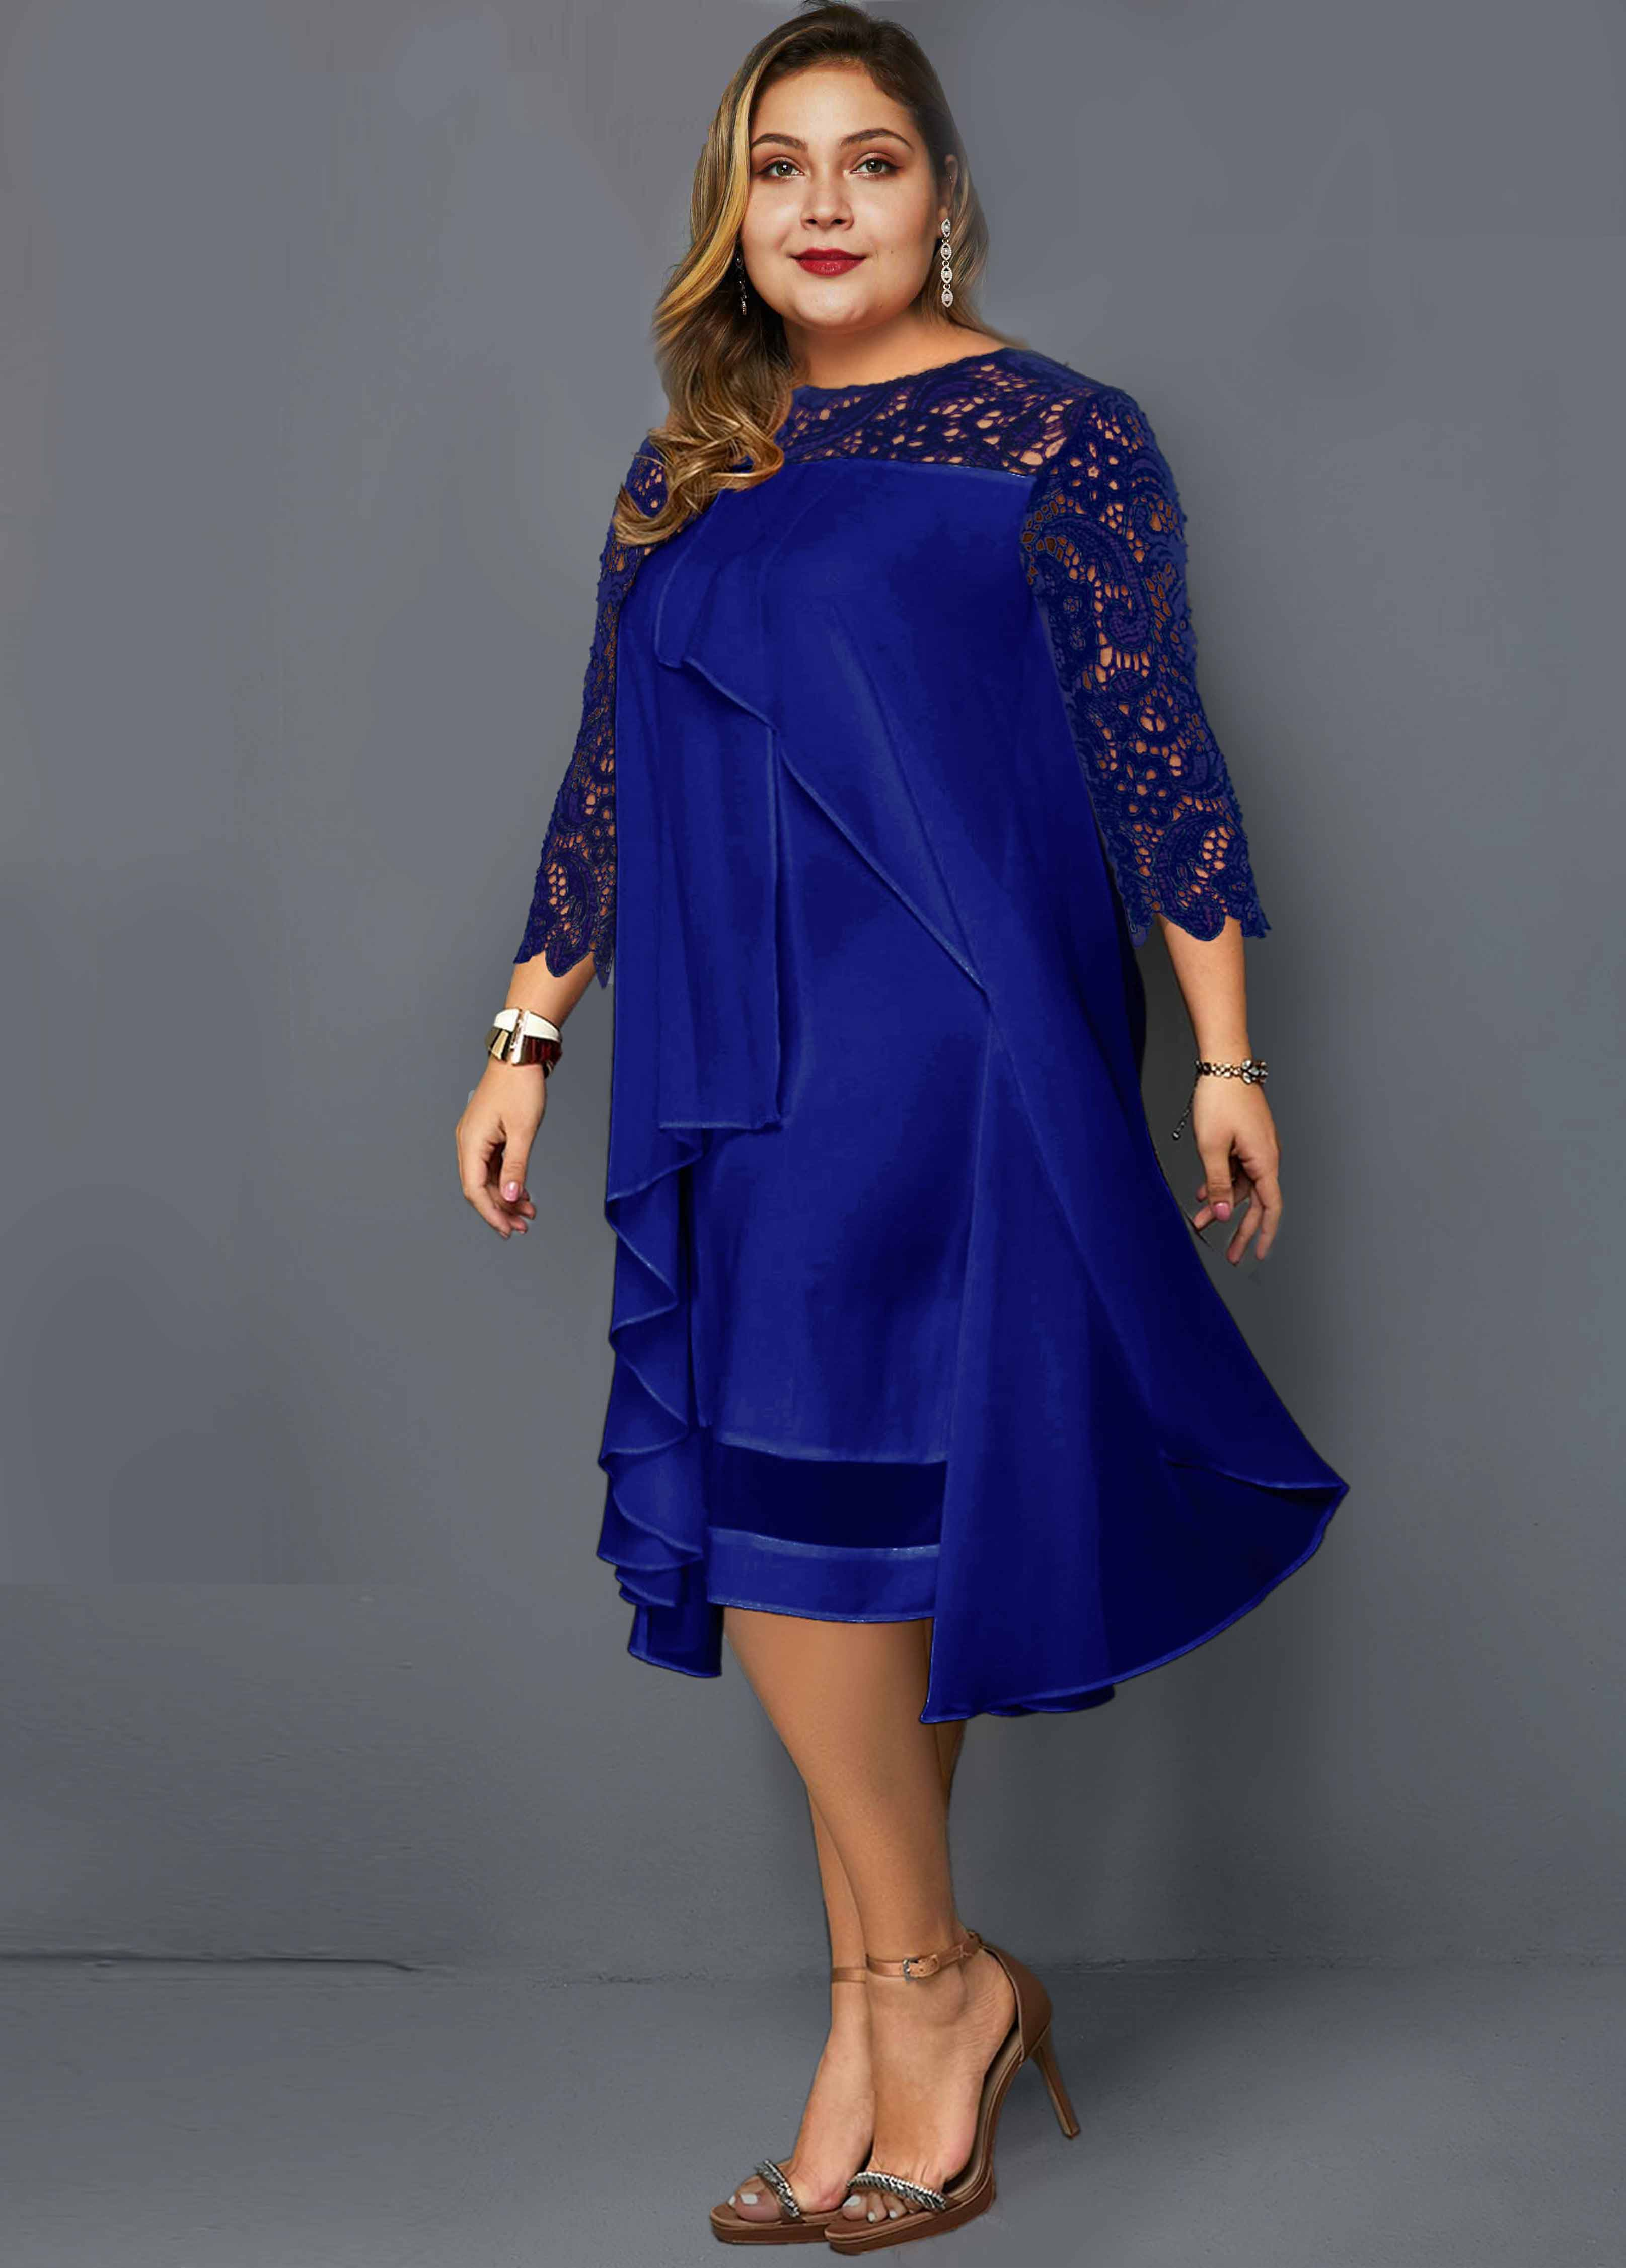 Lace Panel Chiffon Overlay Plus Size Dress